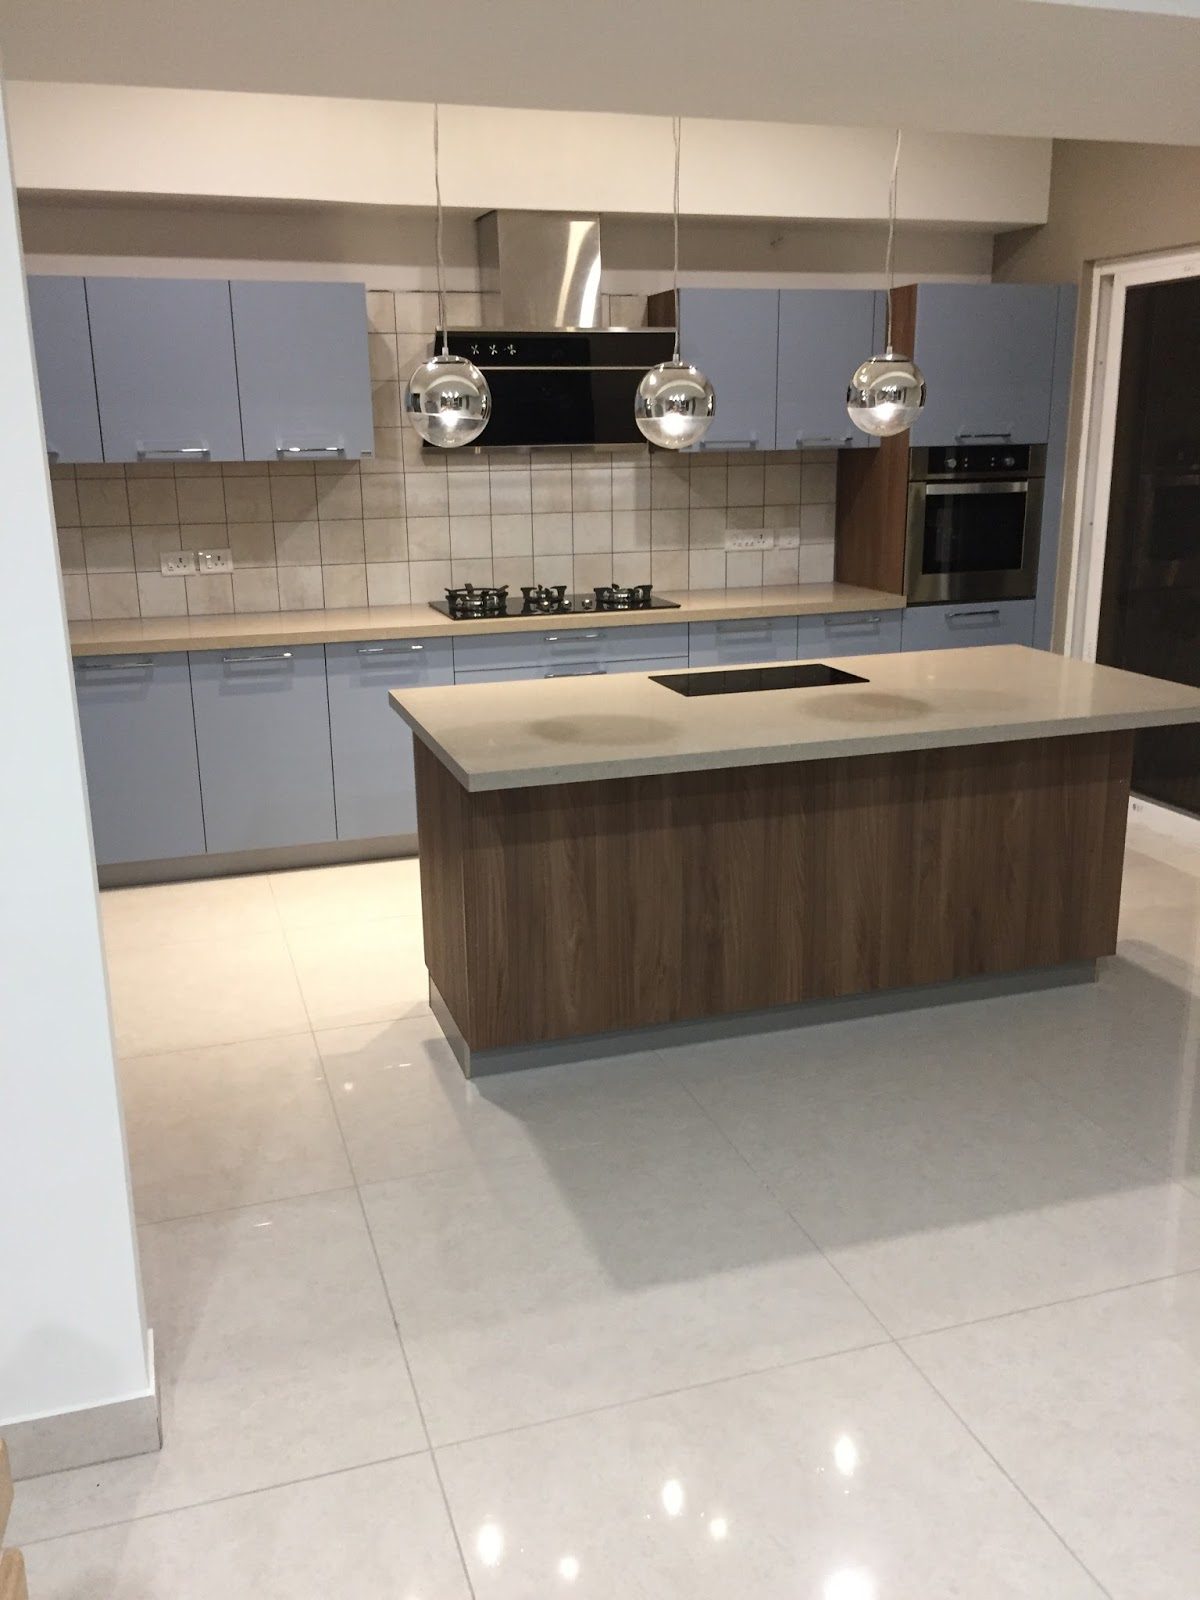 Modular Kitchens in Bangalore: How we ended up choosing Haecker Kitchens